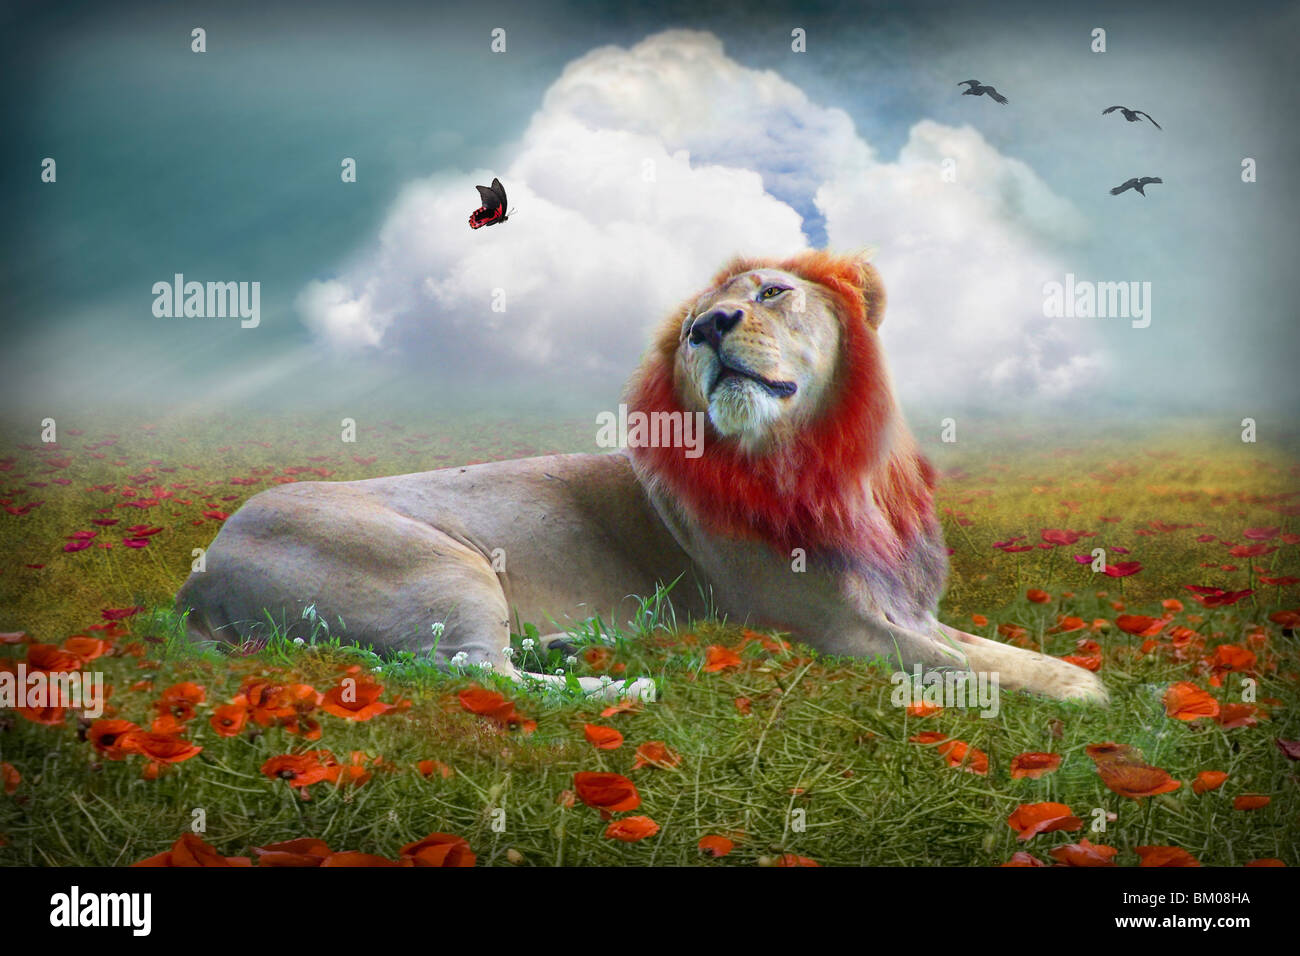 lion in a poppy field with butterfly - Stock Image